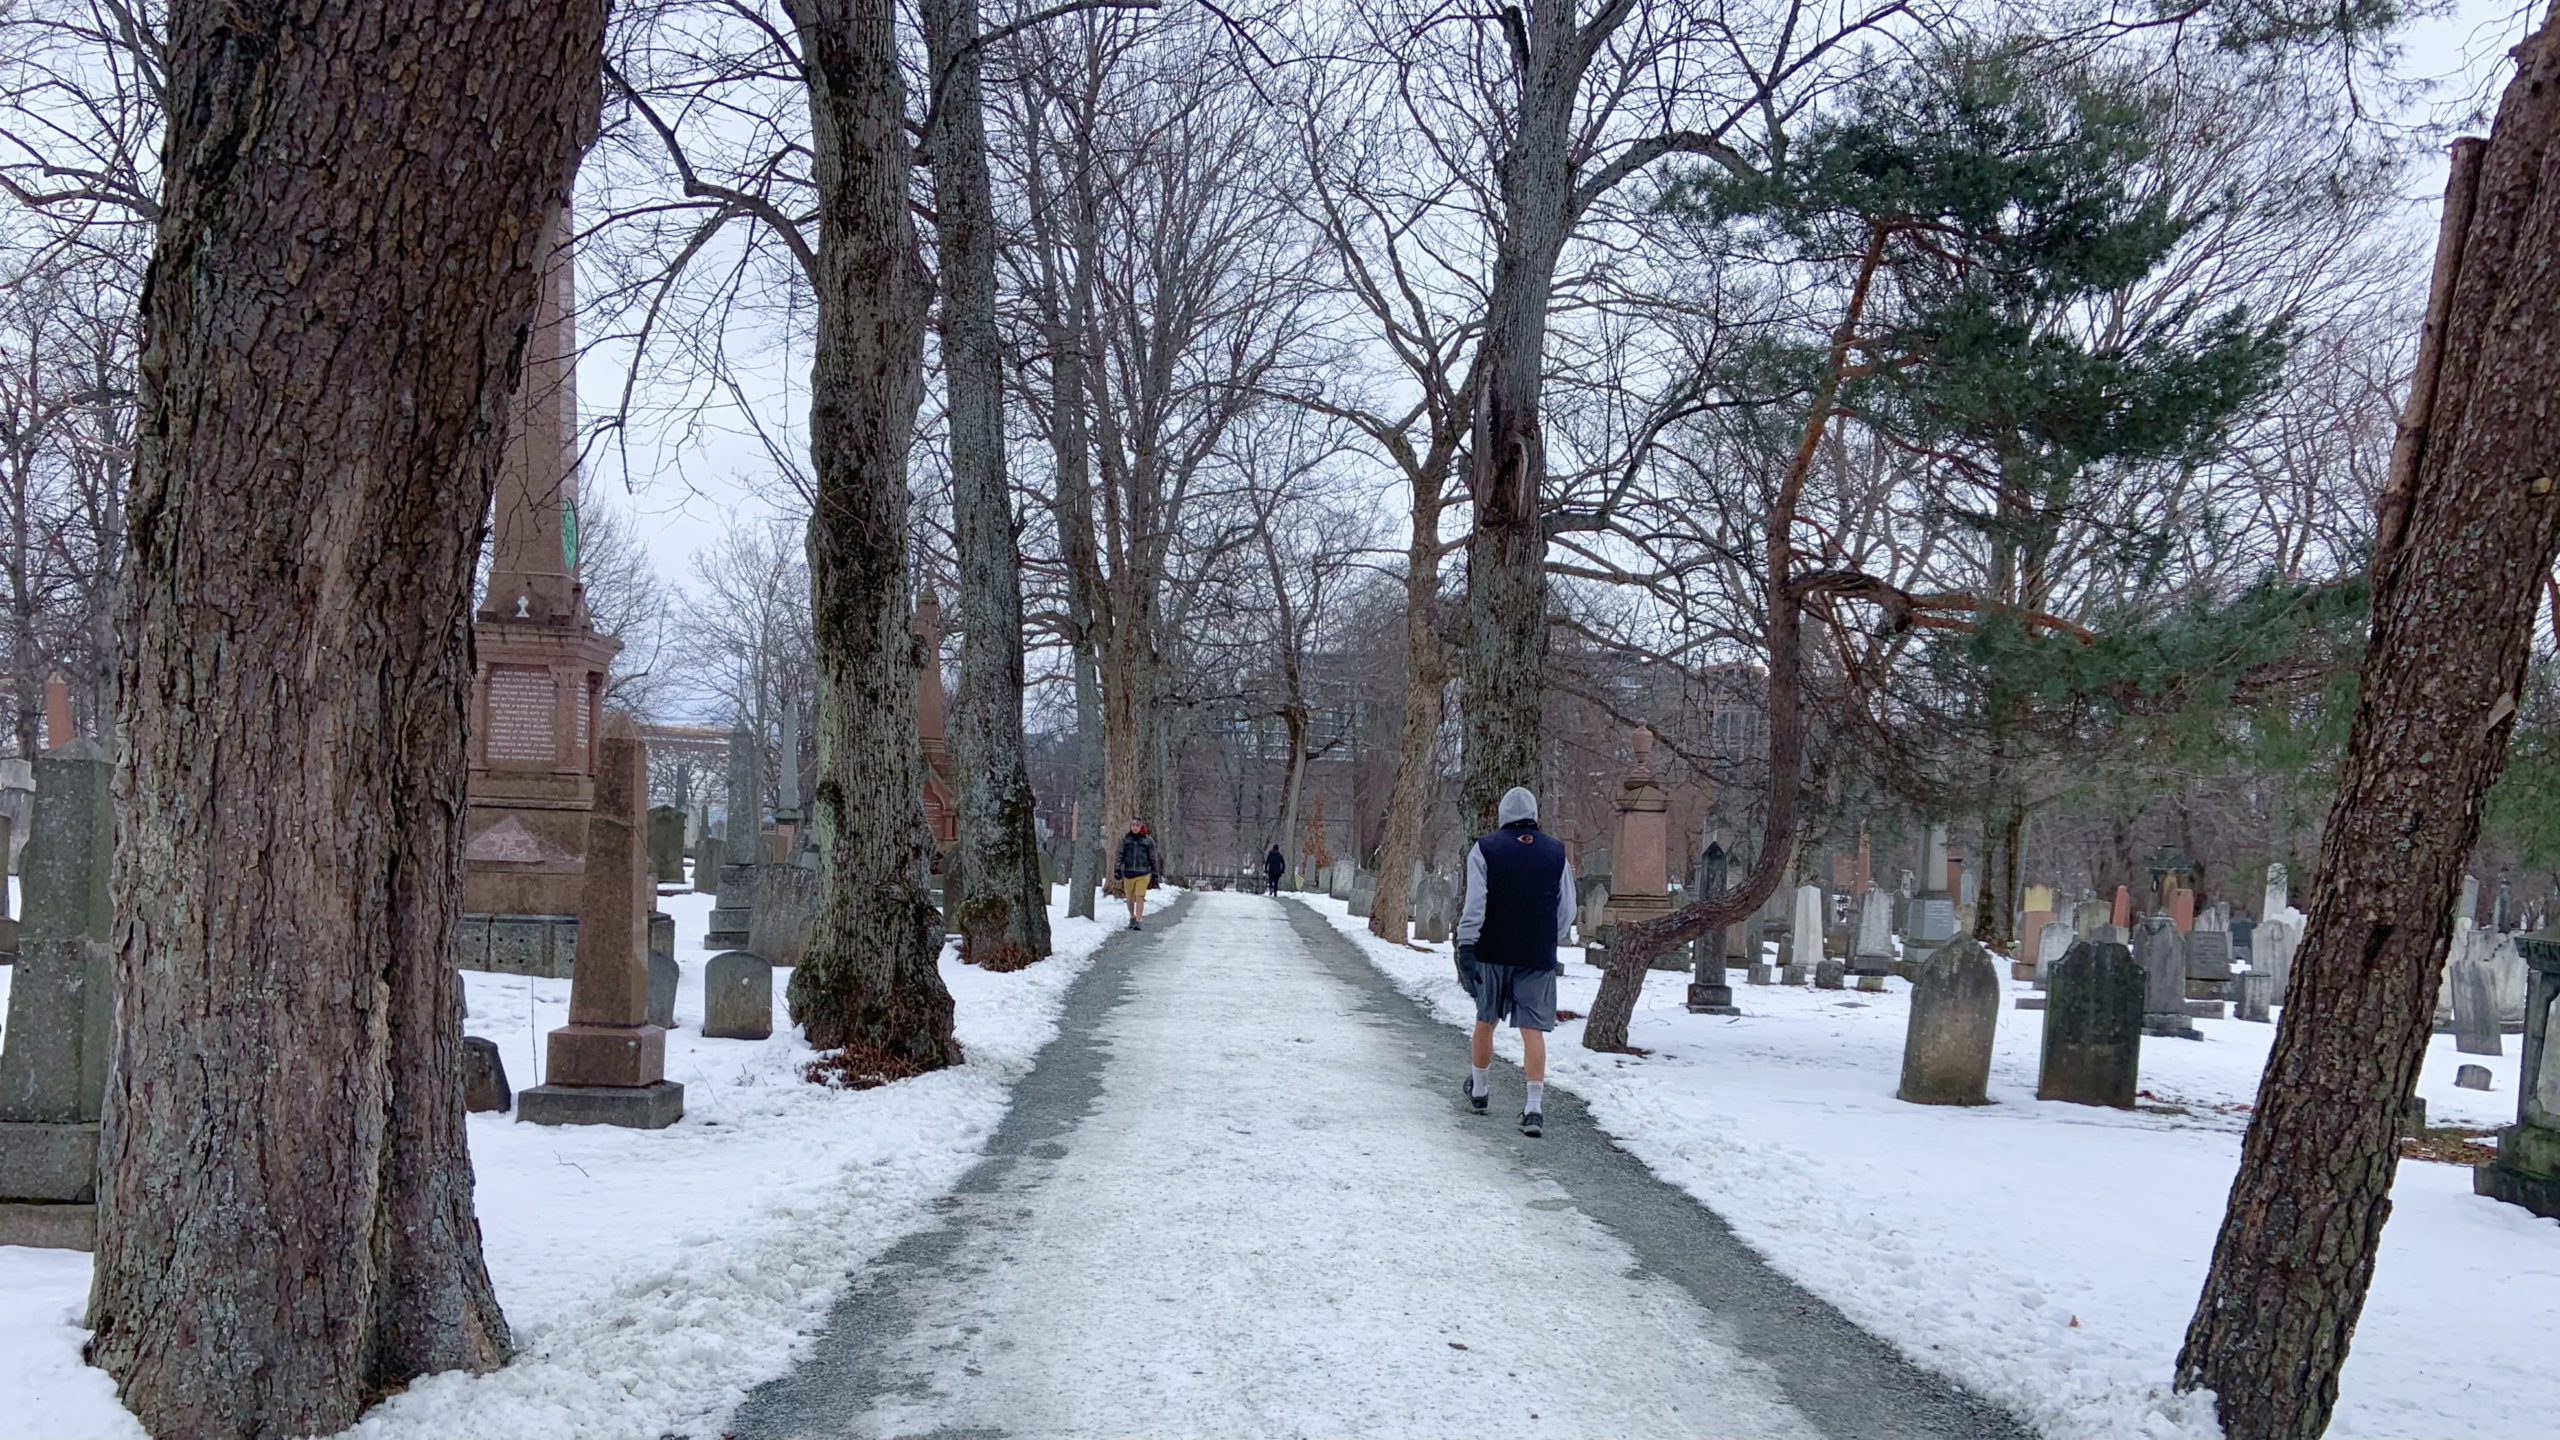 Camp Hill Cemetery in Halifax. The purpose of the panel discussions will be to offer comfort in uncertain times, say organizers.